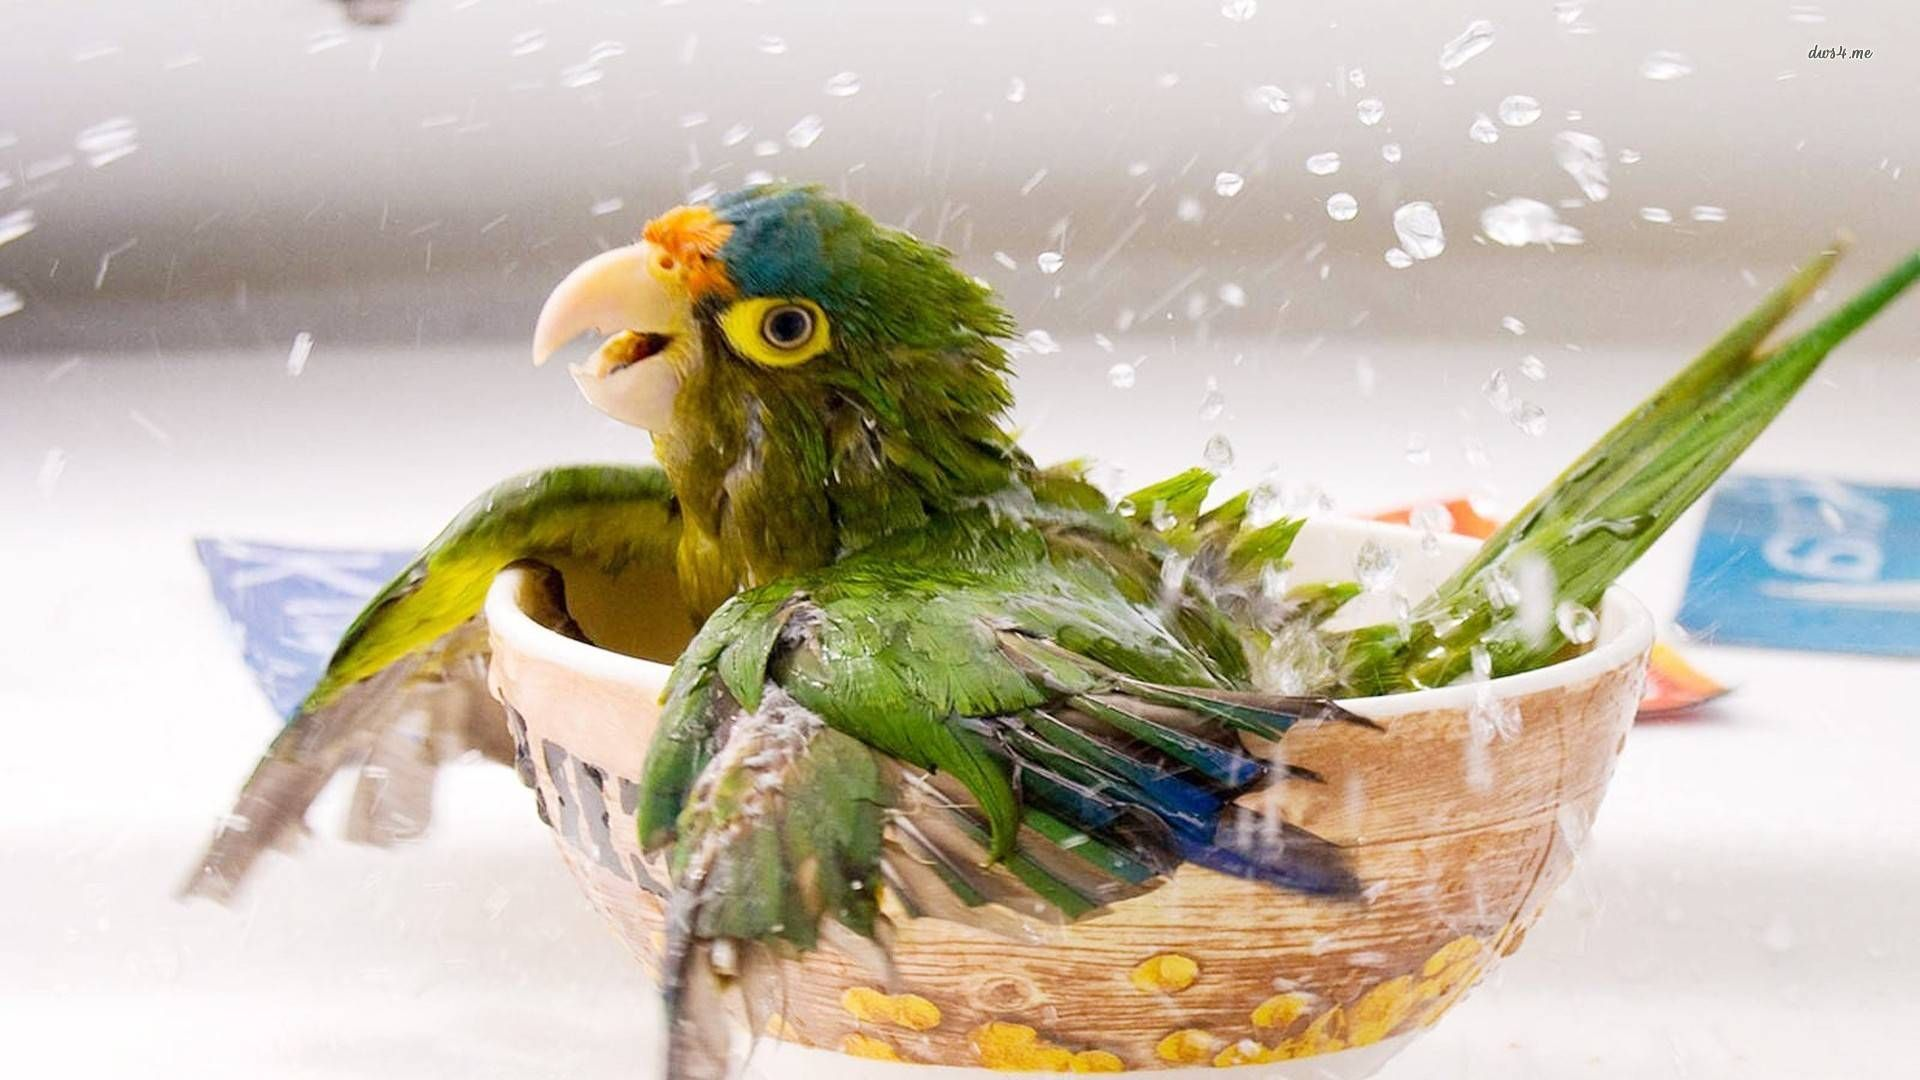 Baby Parrot Cute Wallpaper Beautiful Bird Wallpaper Parrot